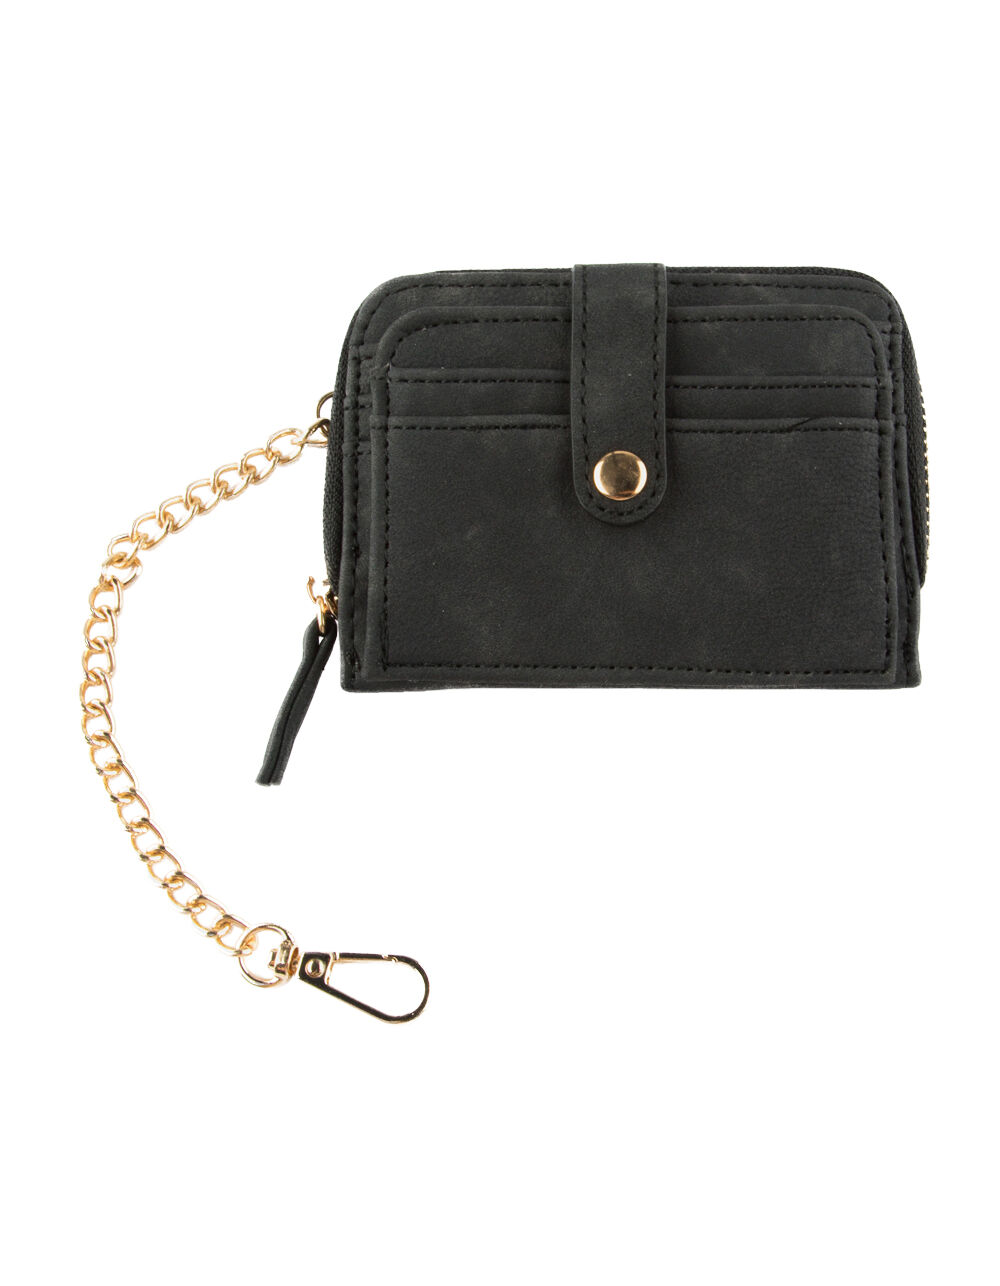 VIOLET RAY ZIP AROUND BLACK WALLET